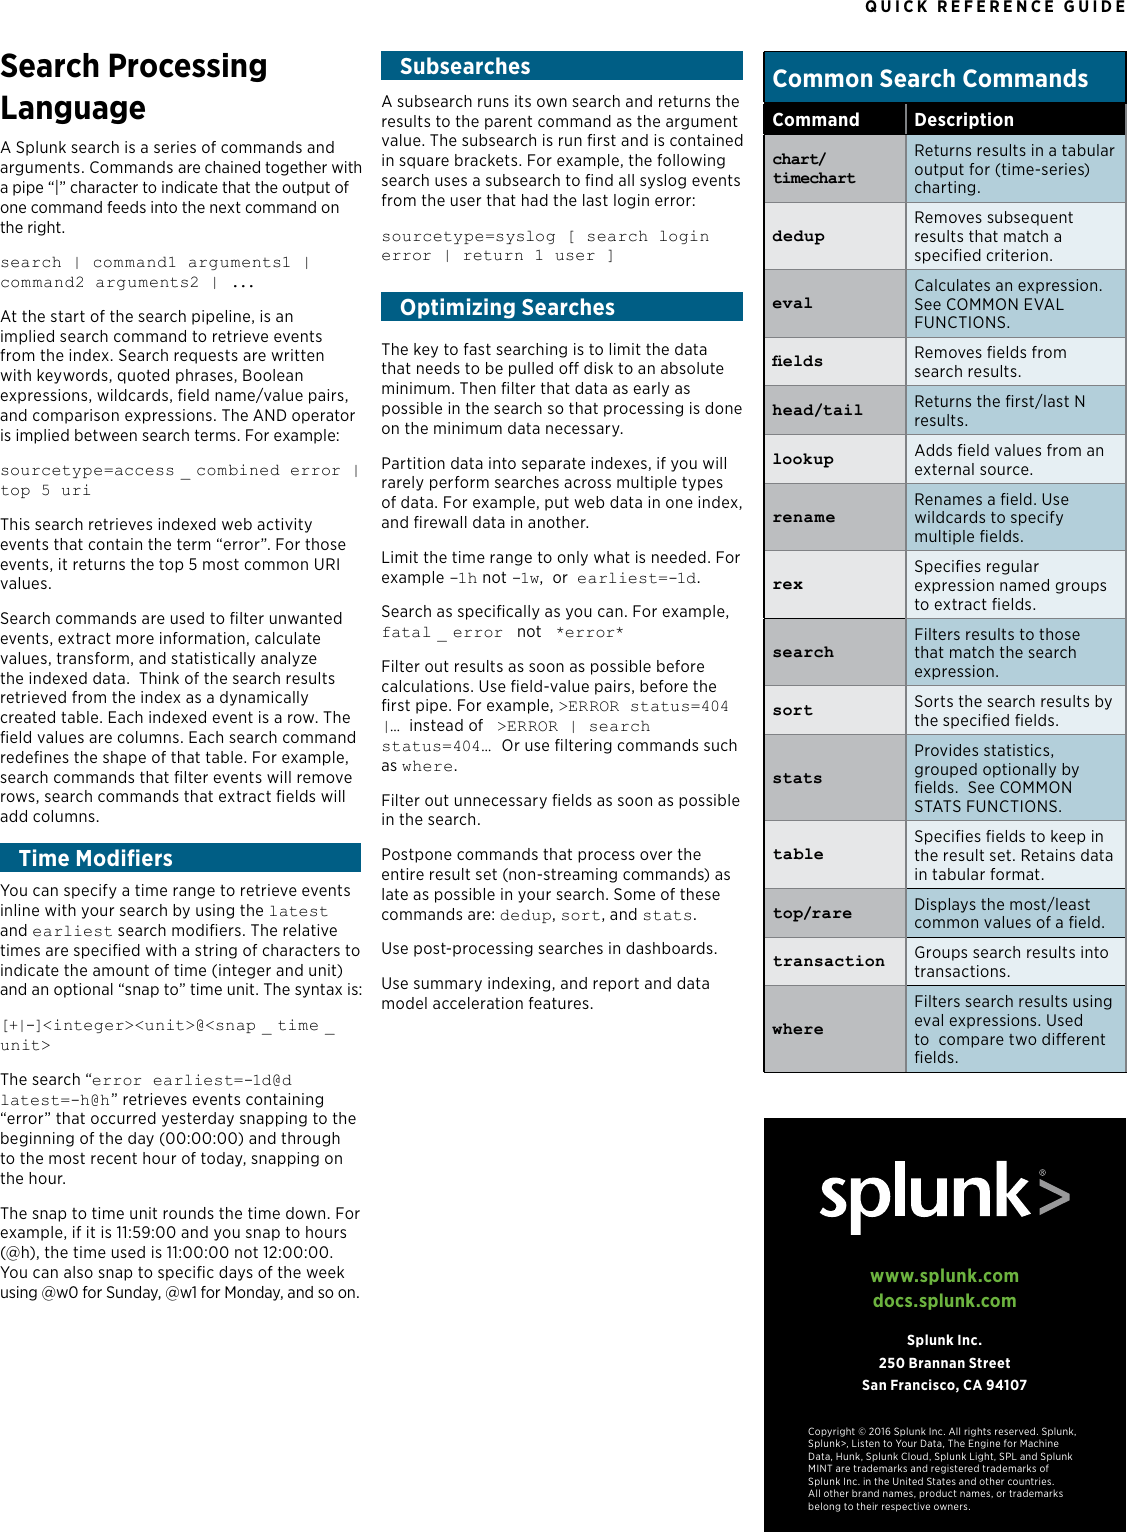 Splunk quick reference guide